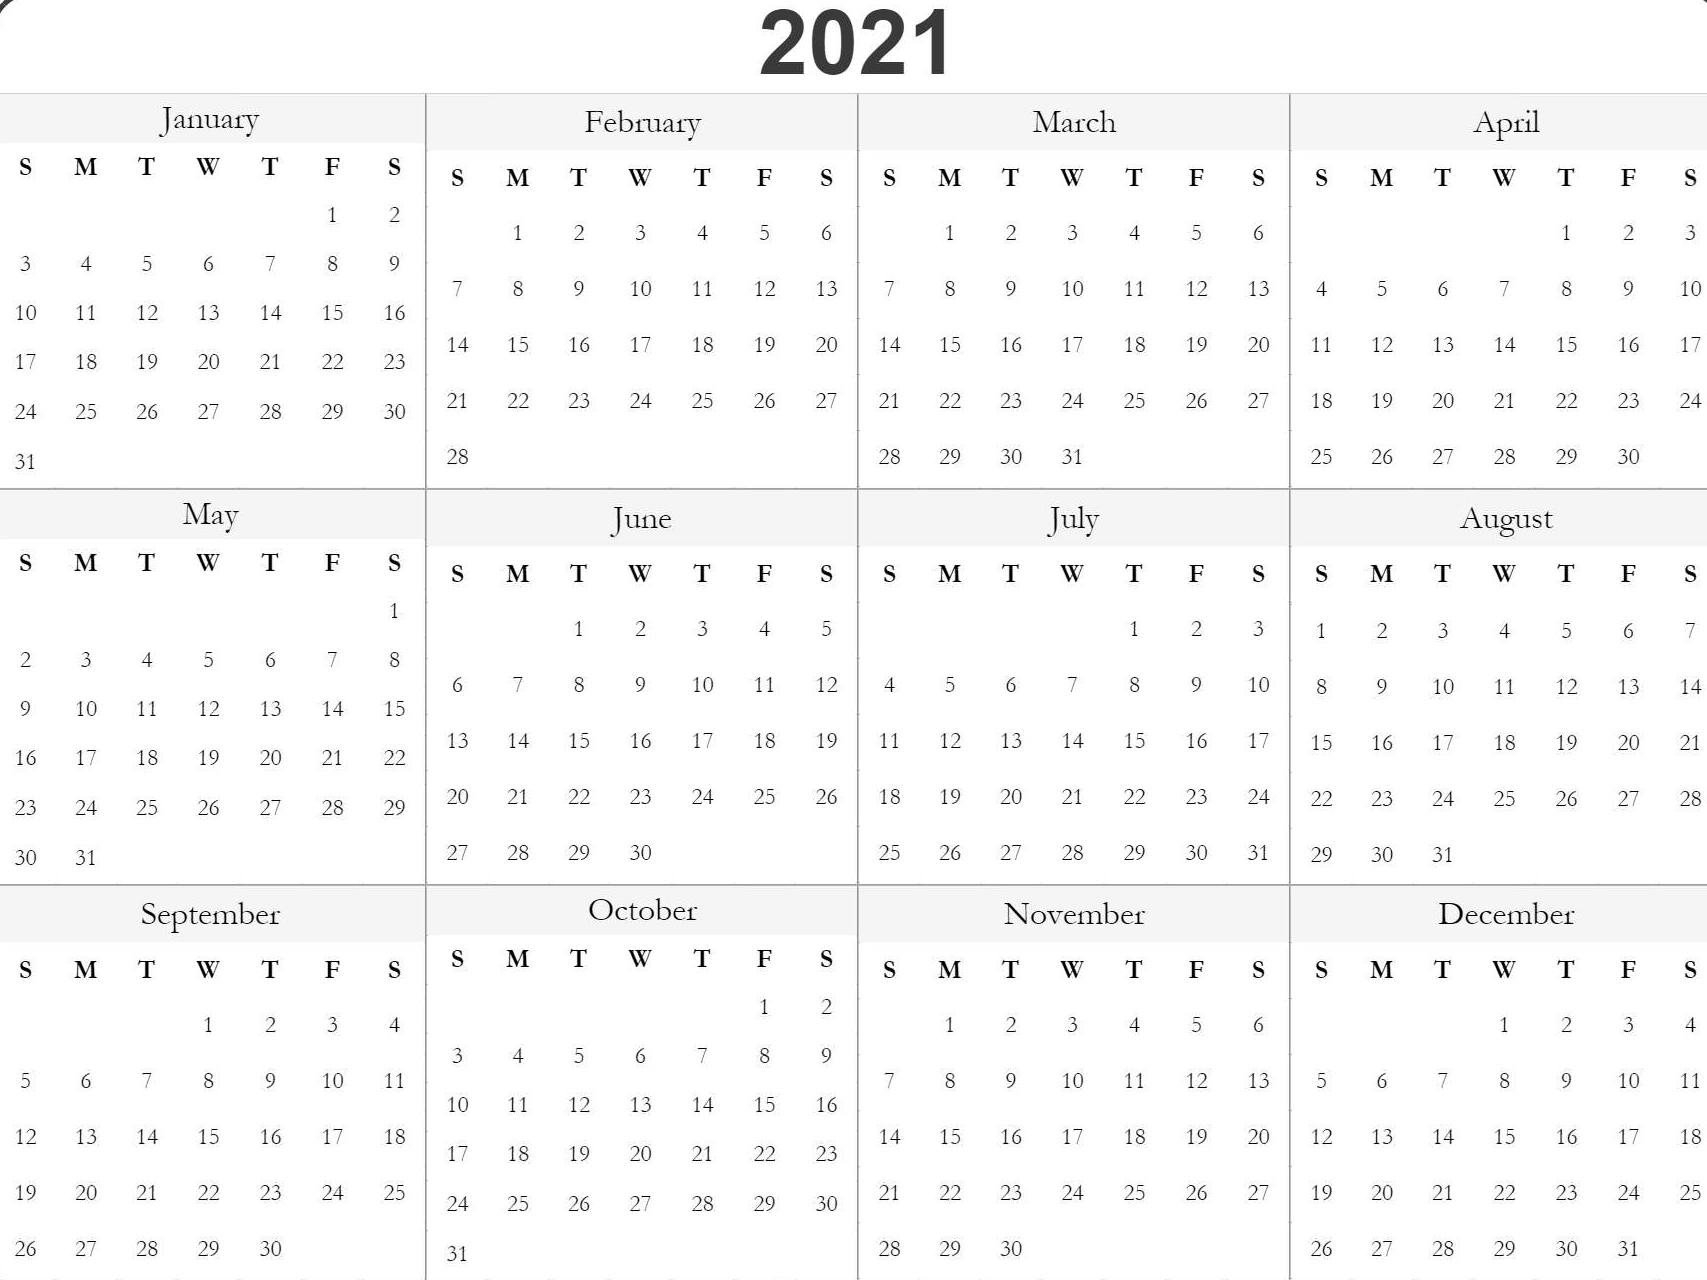 Print Philippine 2021 Calendars With Holiday   Calendar Template Printable pertaining to Philippine Calendar 2021 With Holidays Image